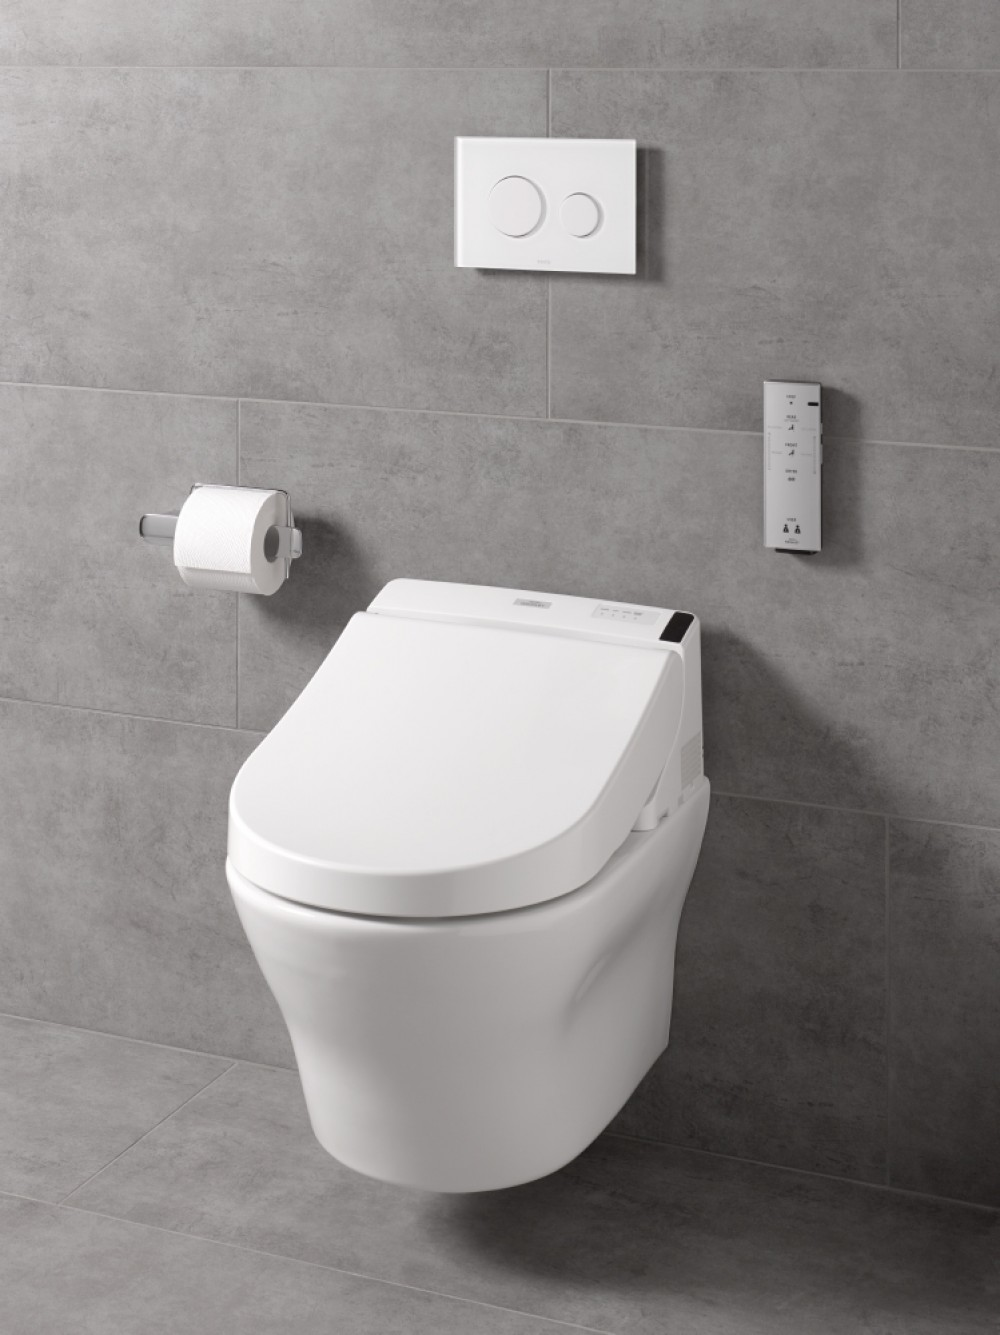 TOTO Washlet GL 2.0 hidden connections toto mh cw162yh